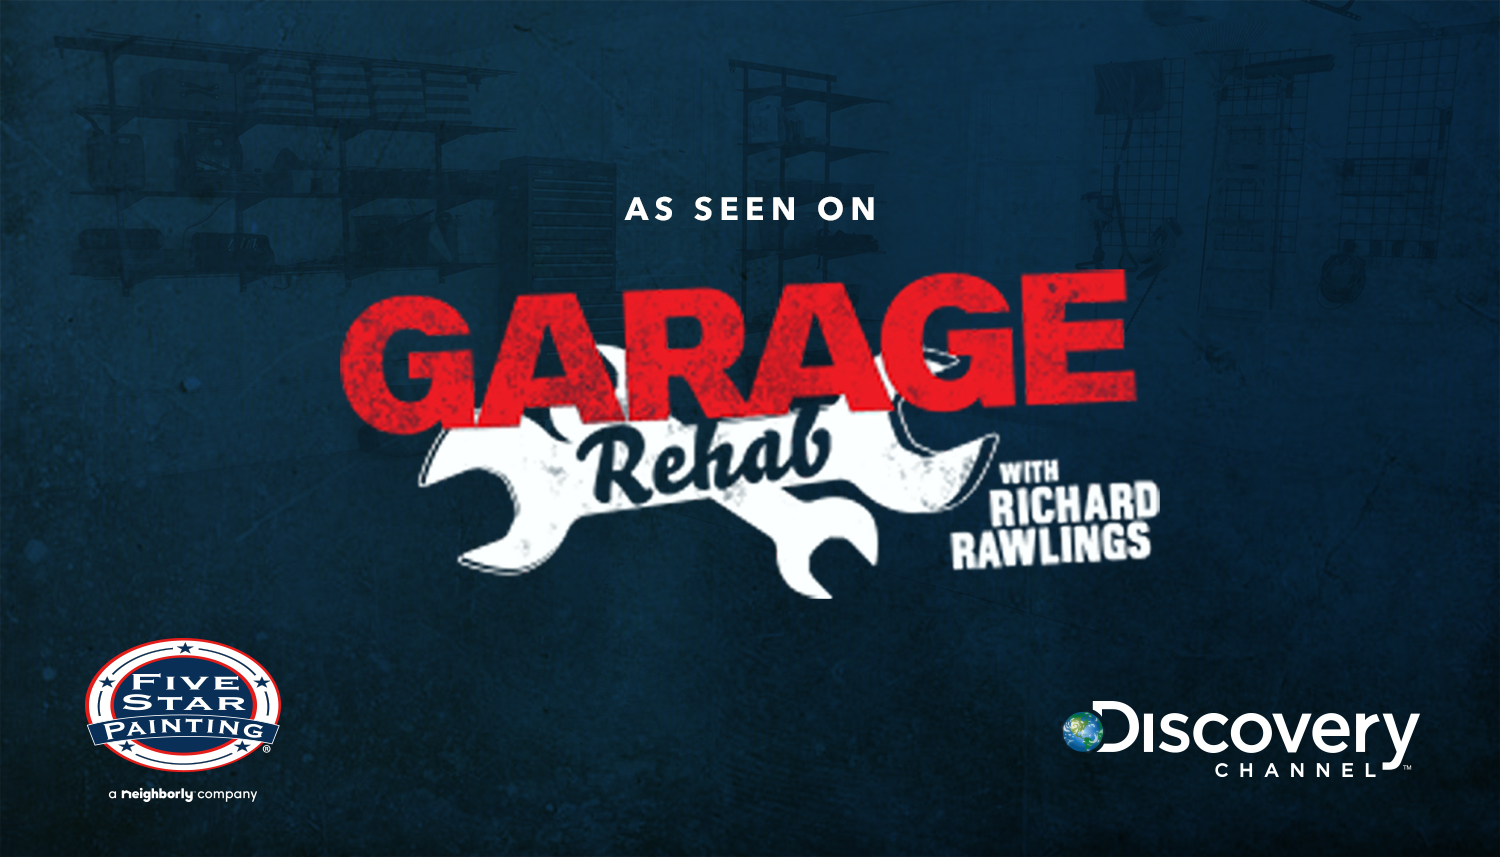 Participating In Discovery Channels Garage Rehab